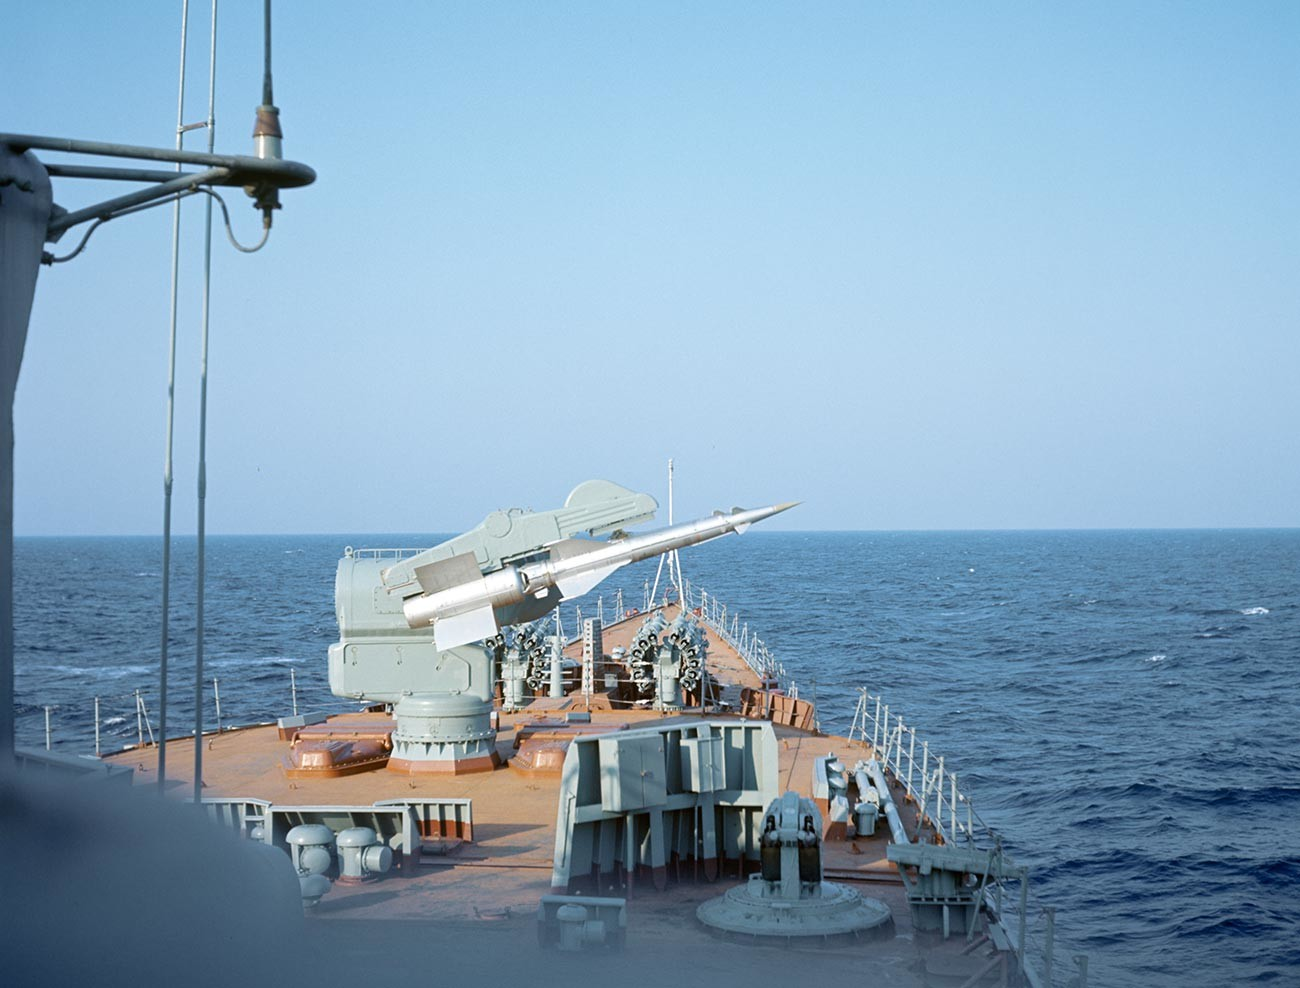 A missile mount on the deck of a Northern Fleet antisubmarine ship involved in the Okean-70 maneuvers.